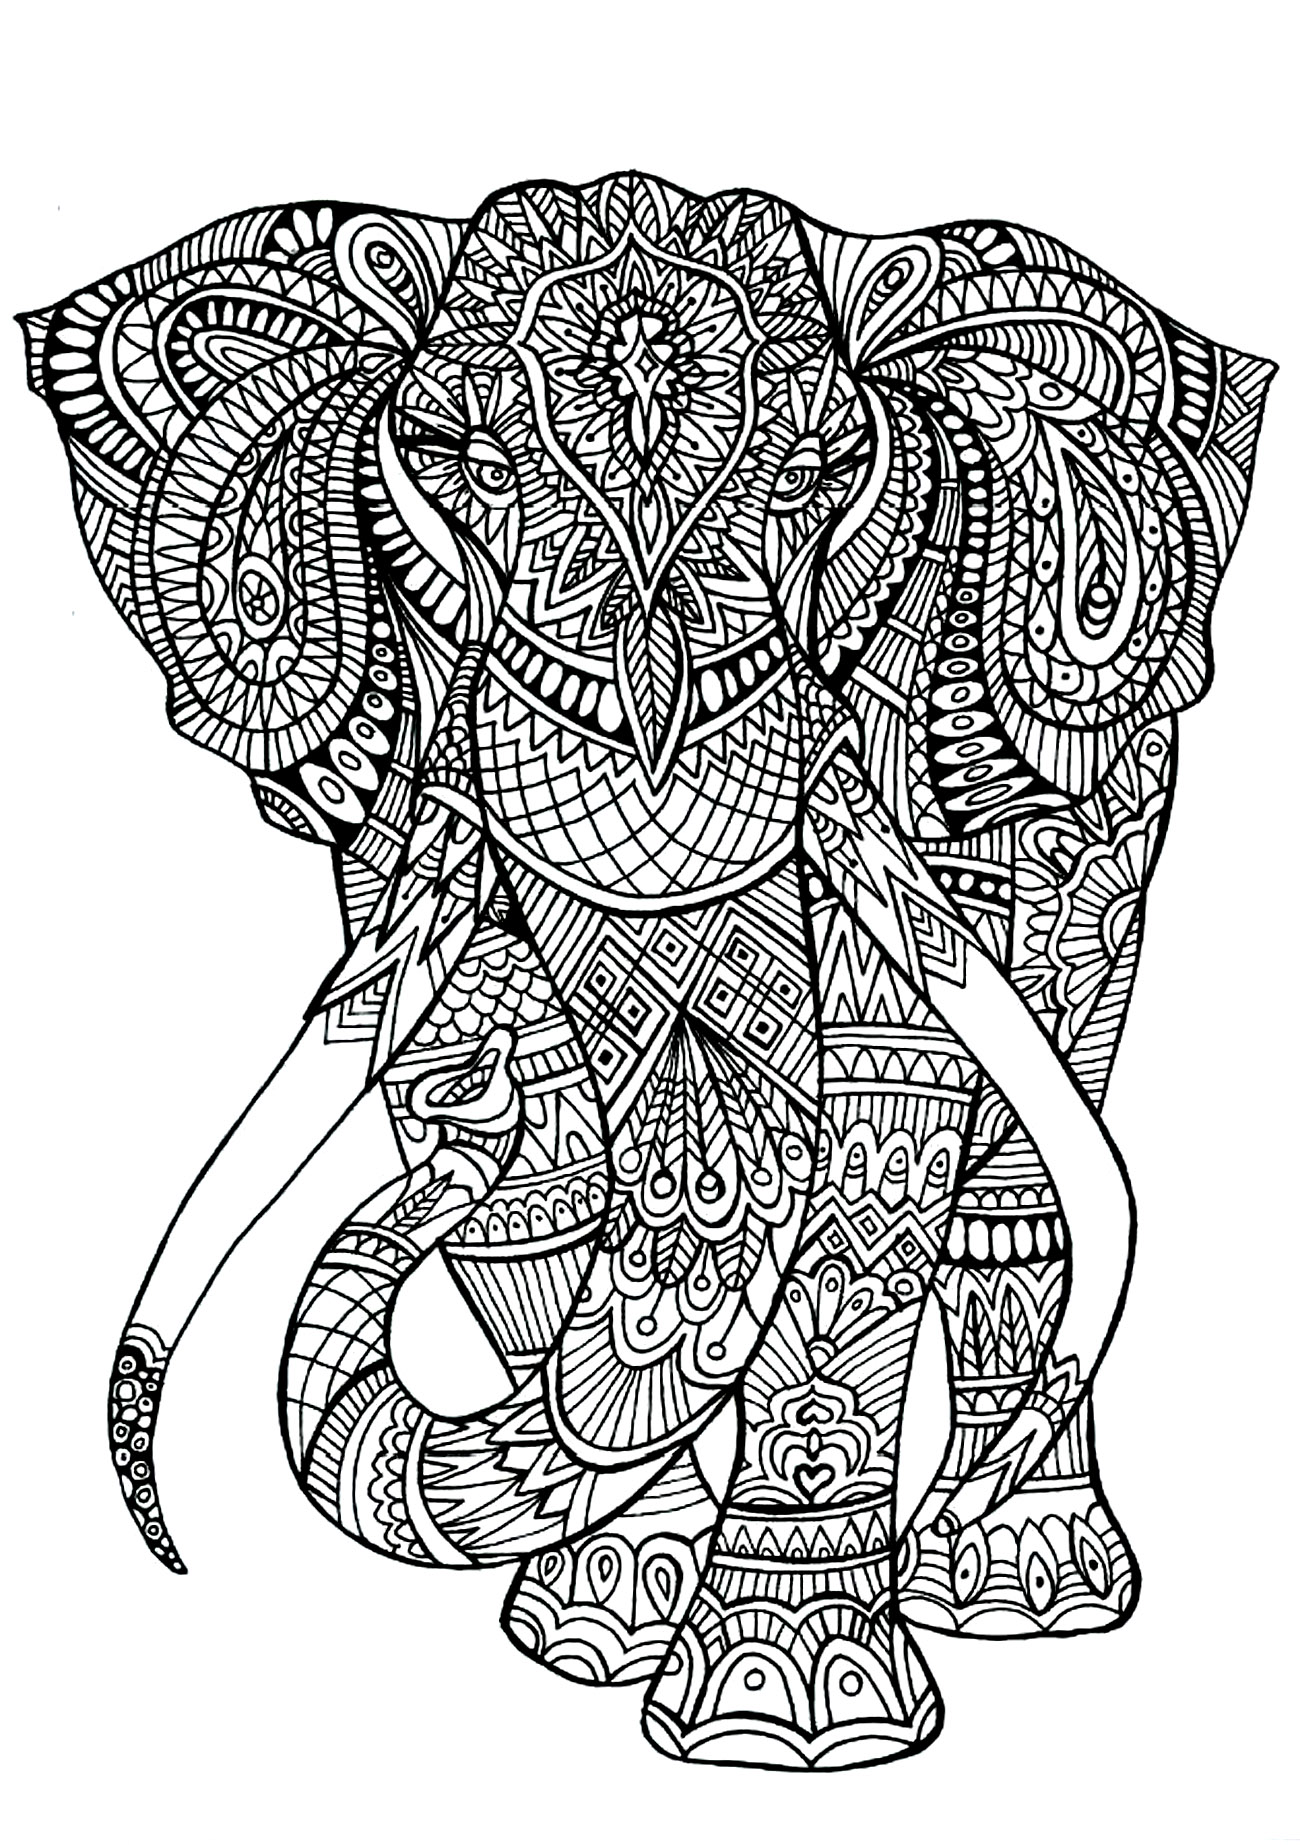 Coloring pictures for adults - A Big Elephant Full Of Details From The Gallery Insects